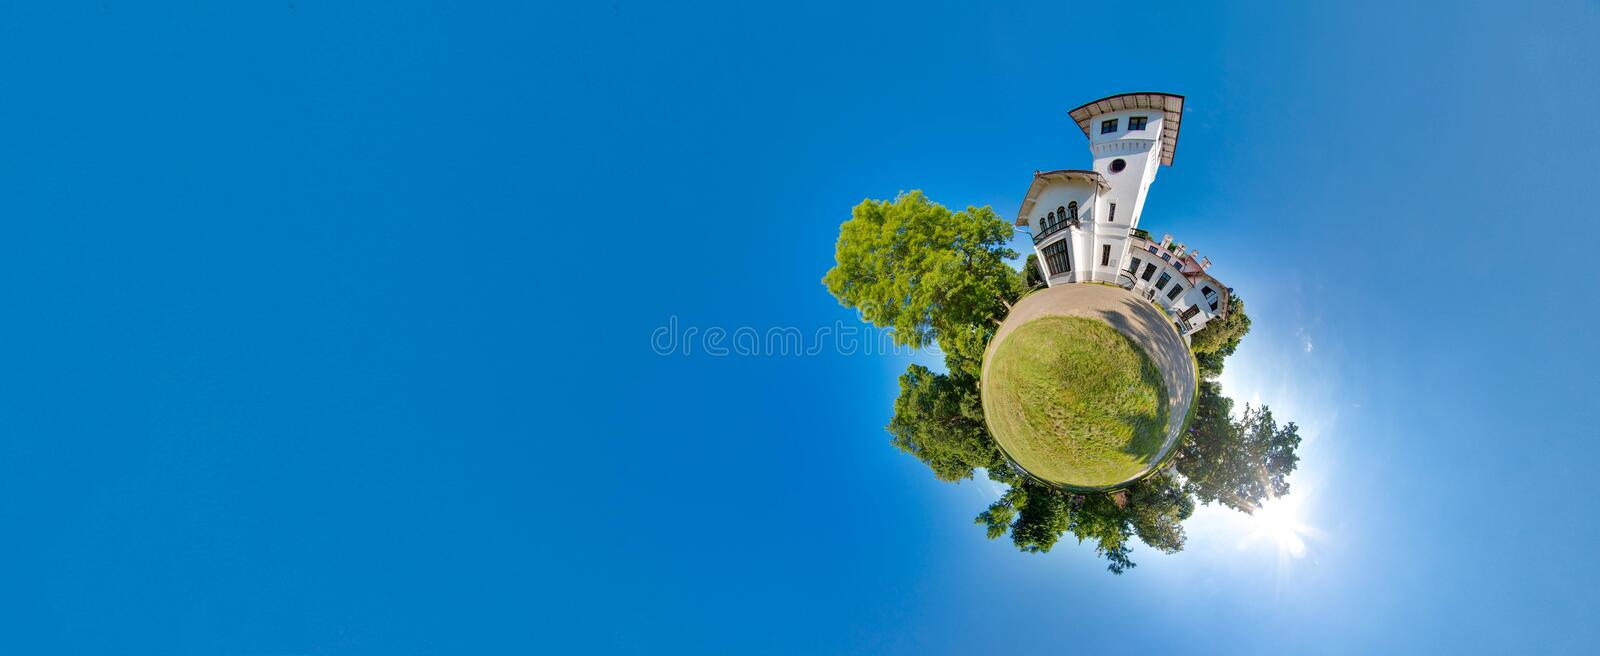 Green little planet with trees, soft blue sky and building. Tiny planet sunset near the castle. 360 viewing angle. stock photos